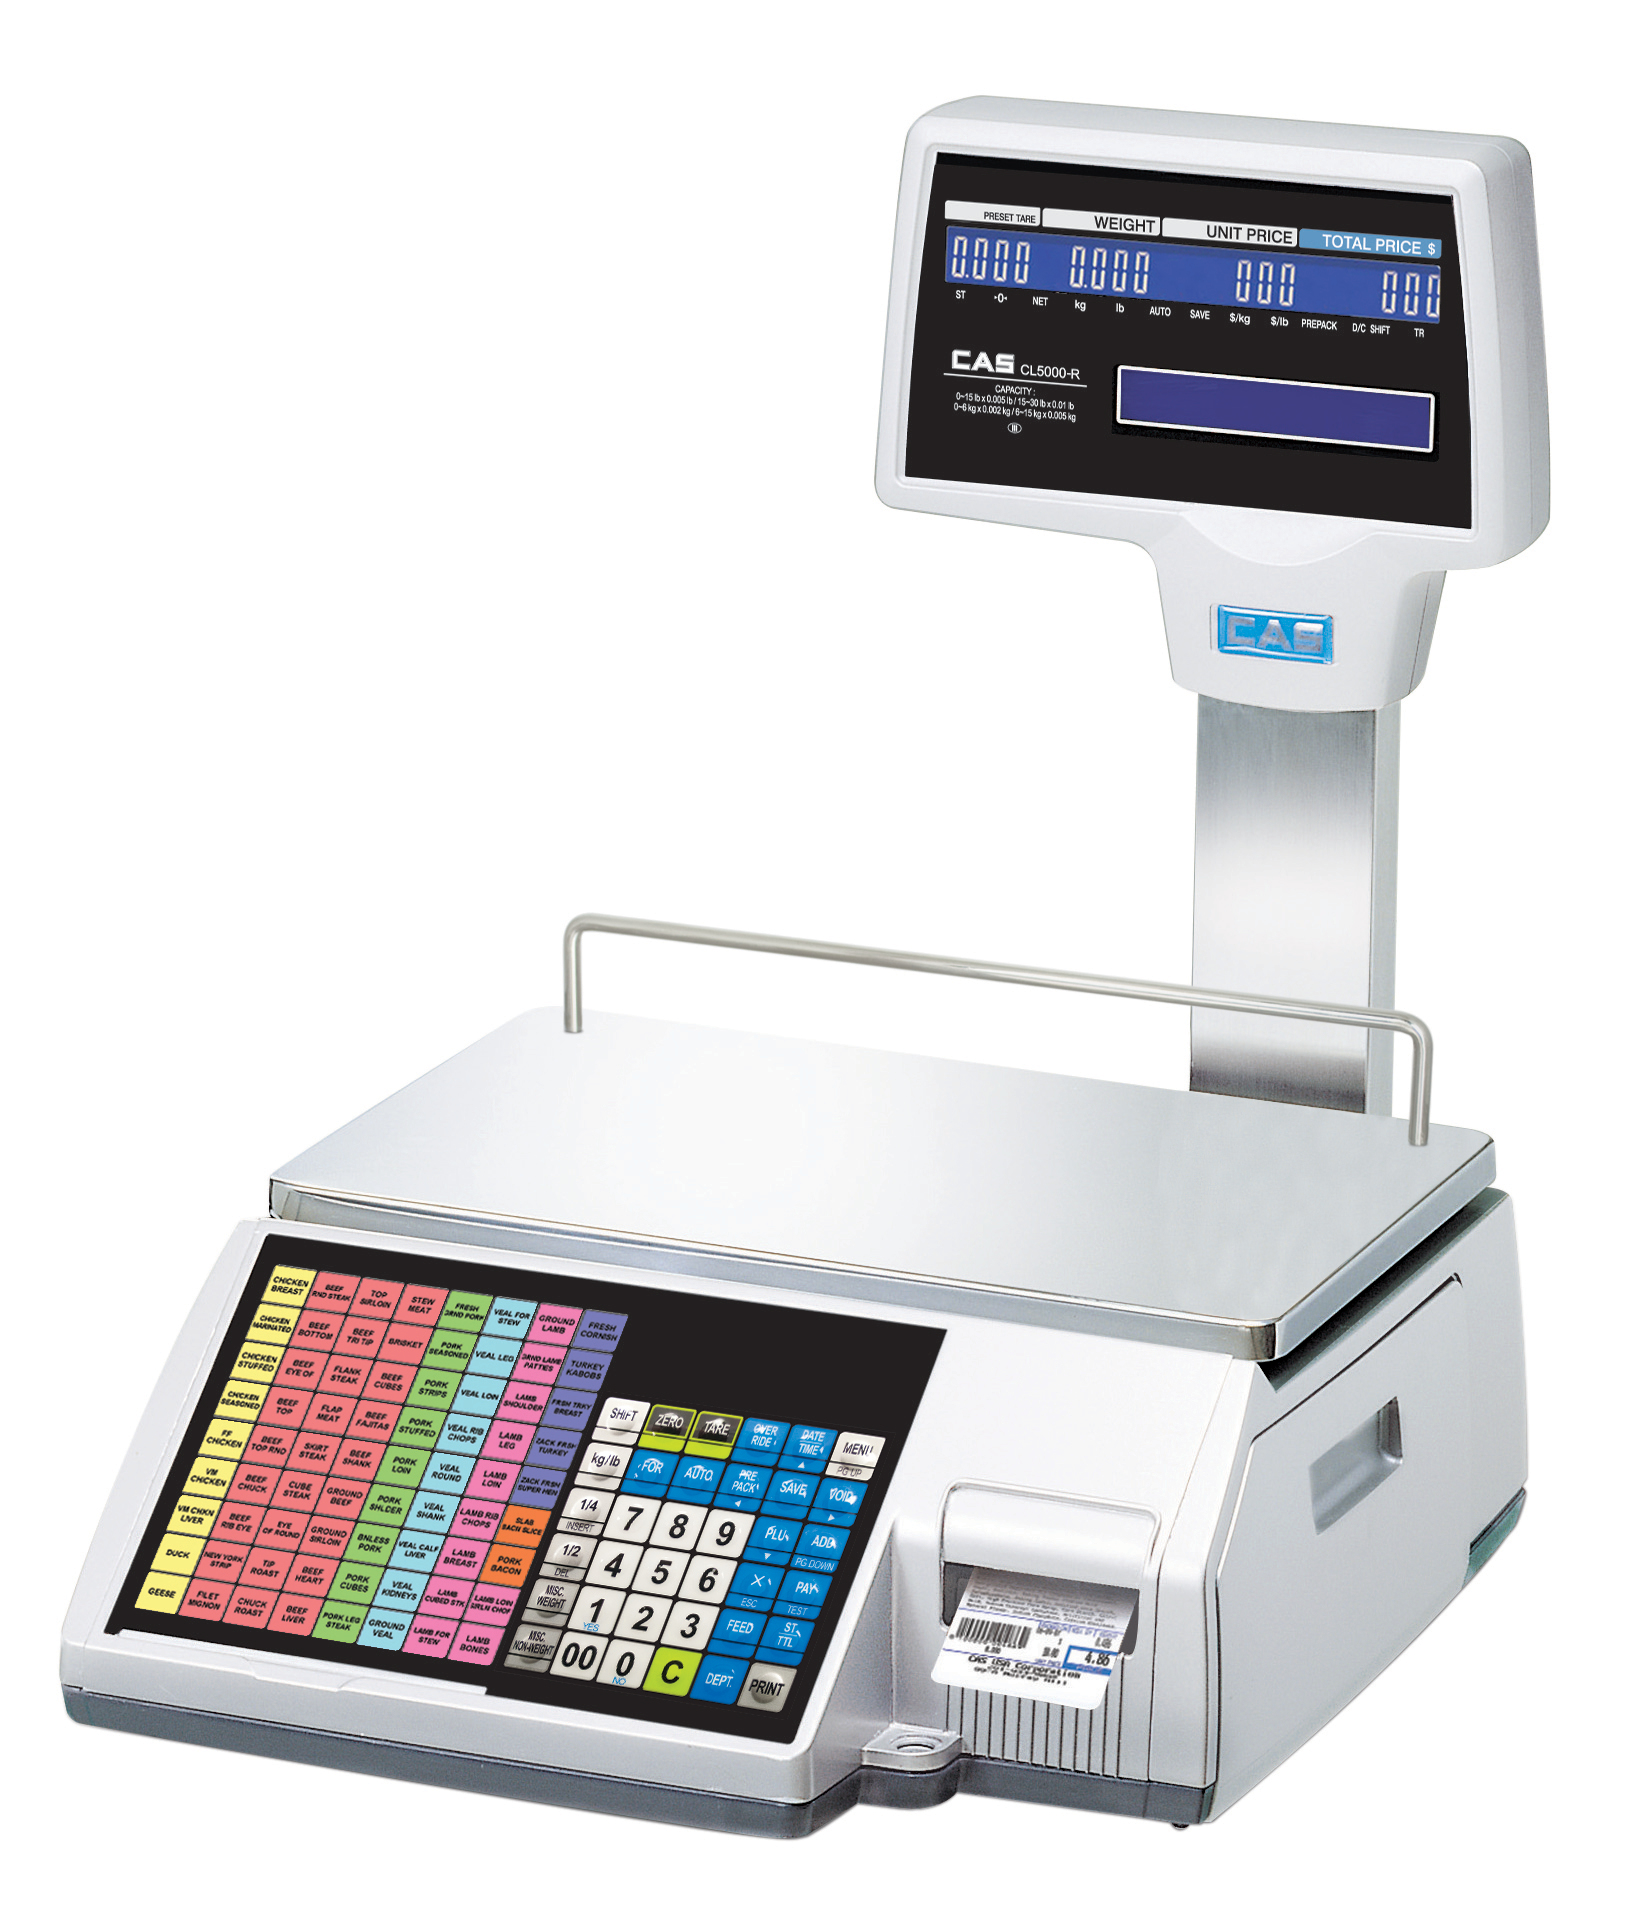 CAS CL5500 Label Printing Scale